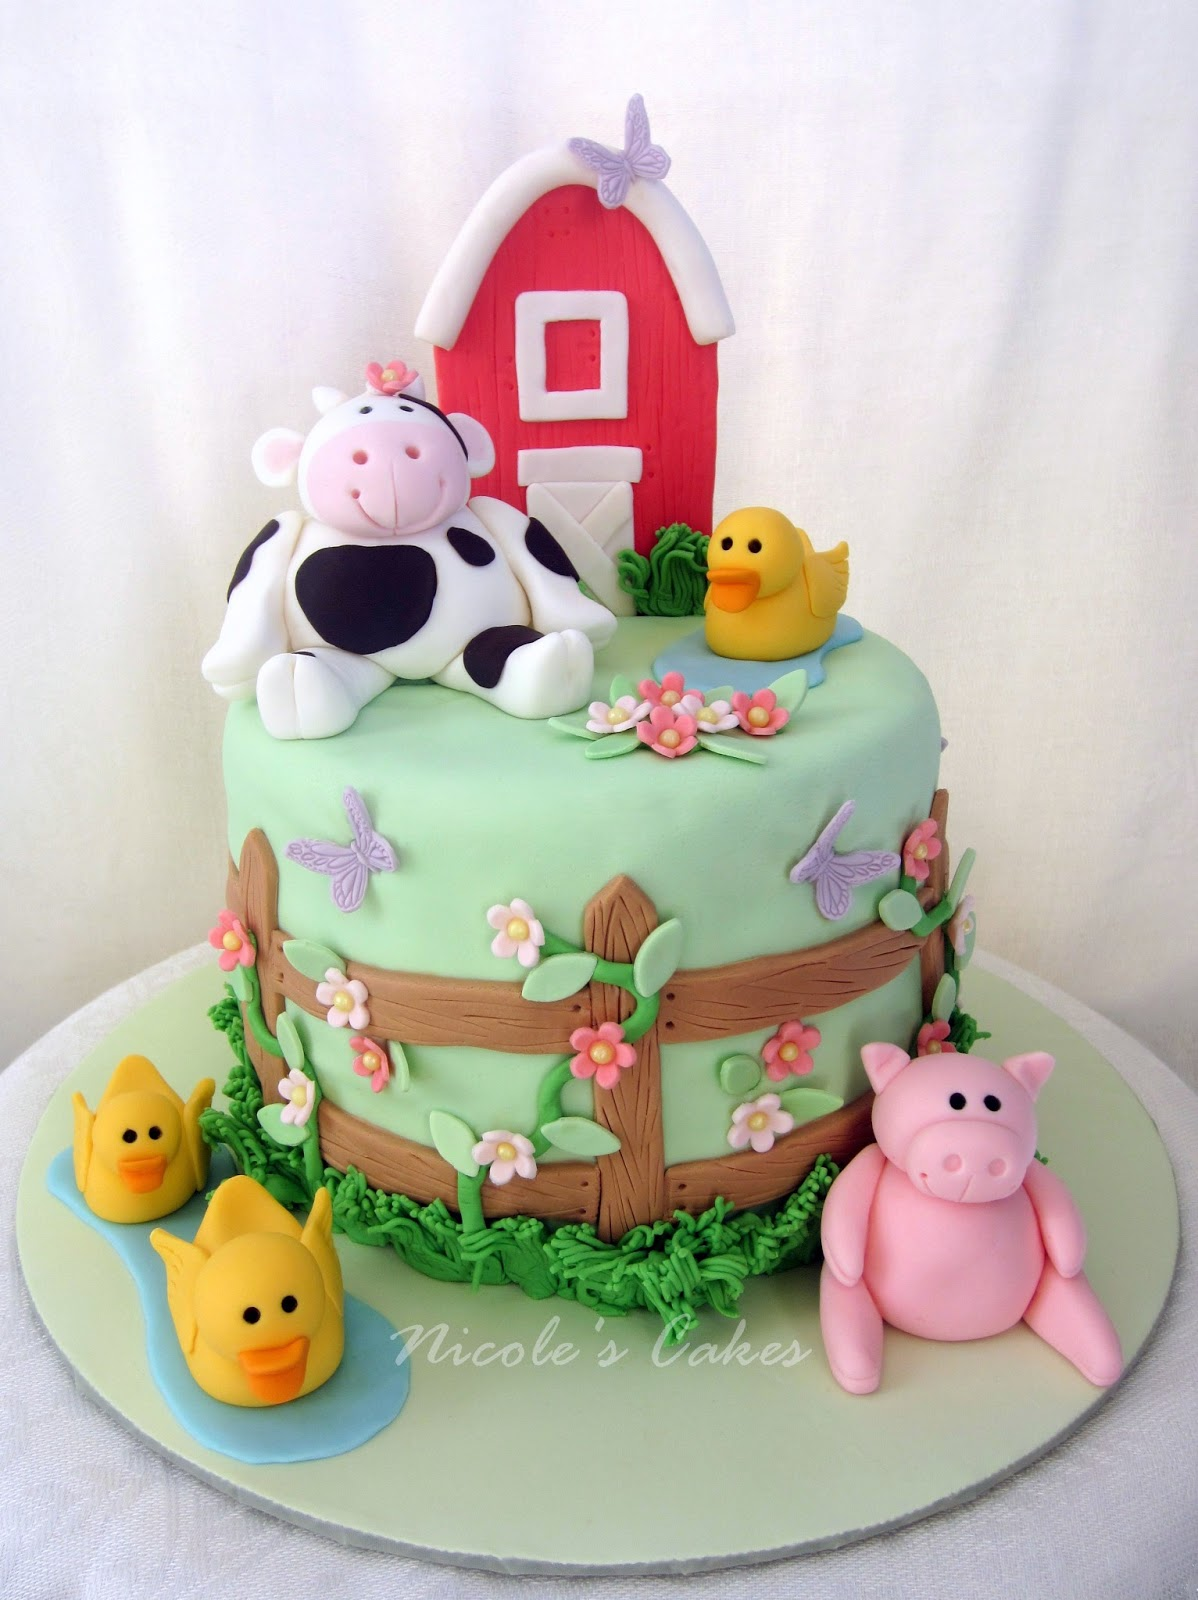 Cake Decoration Farm Theme : Confections, Cakes & Creations!: Farm Themed Baby Shower Cake!